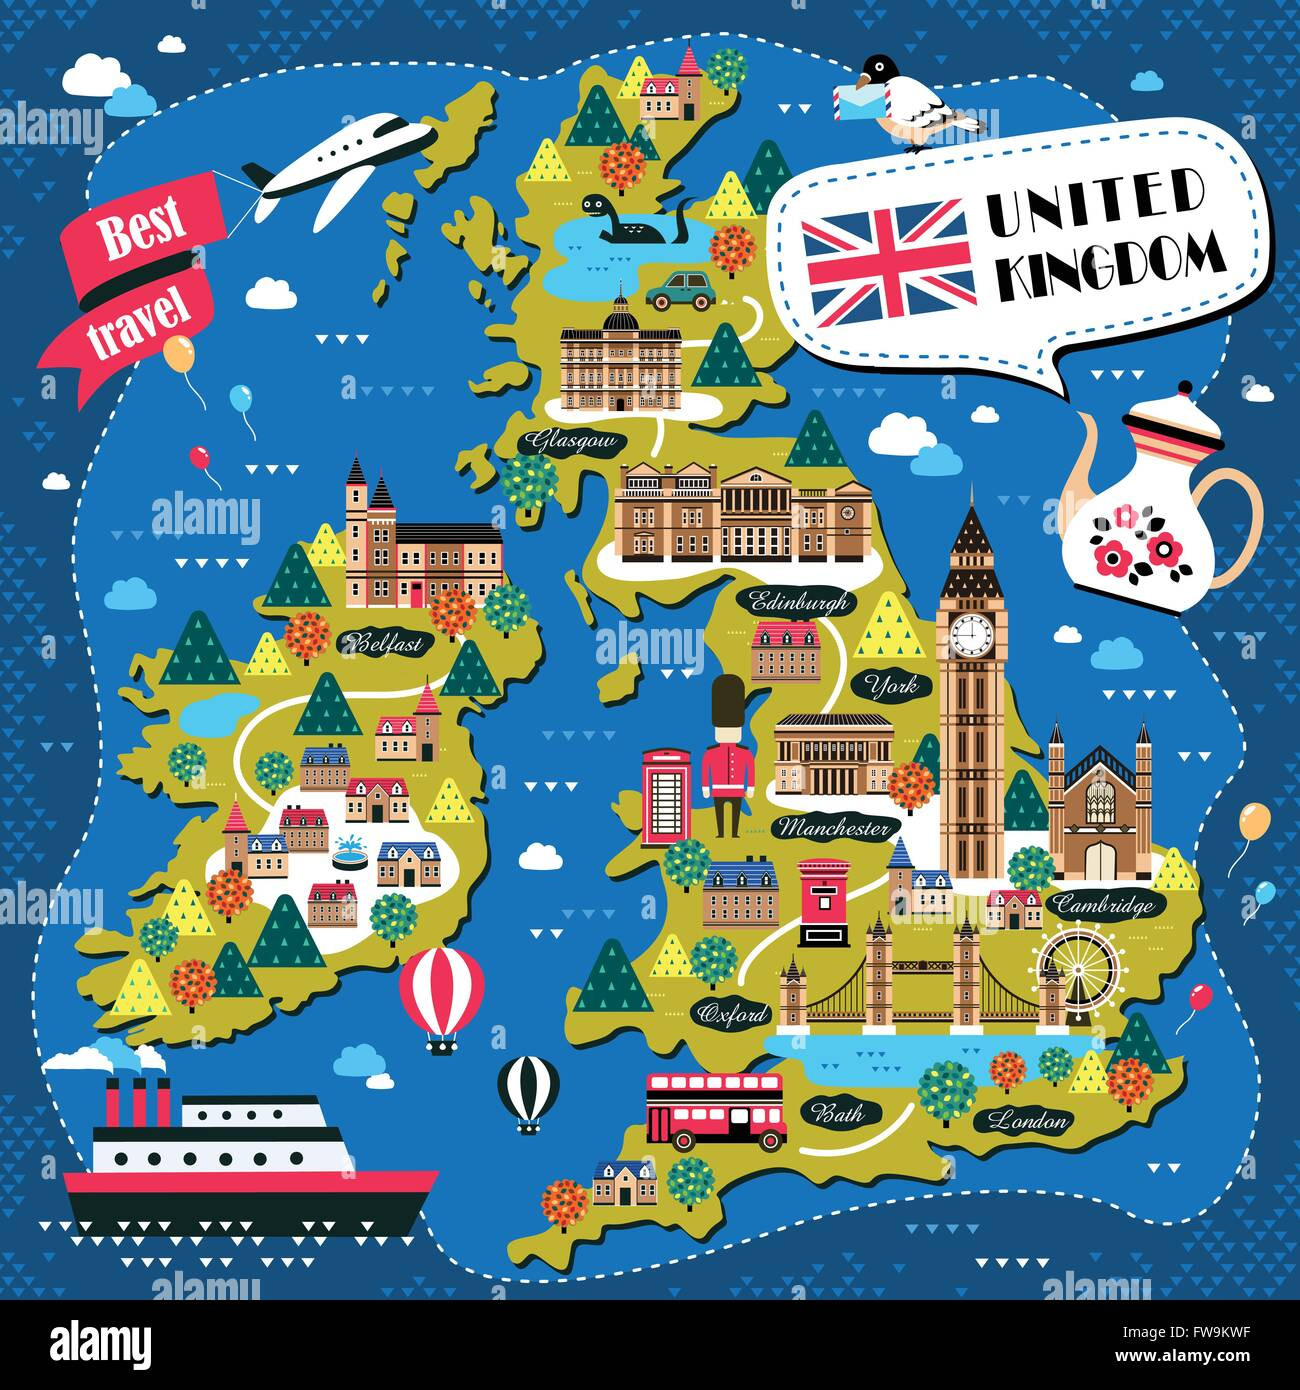 Kare Design Nederland Lovely United Kingdom Travel Map Design With Attractions